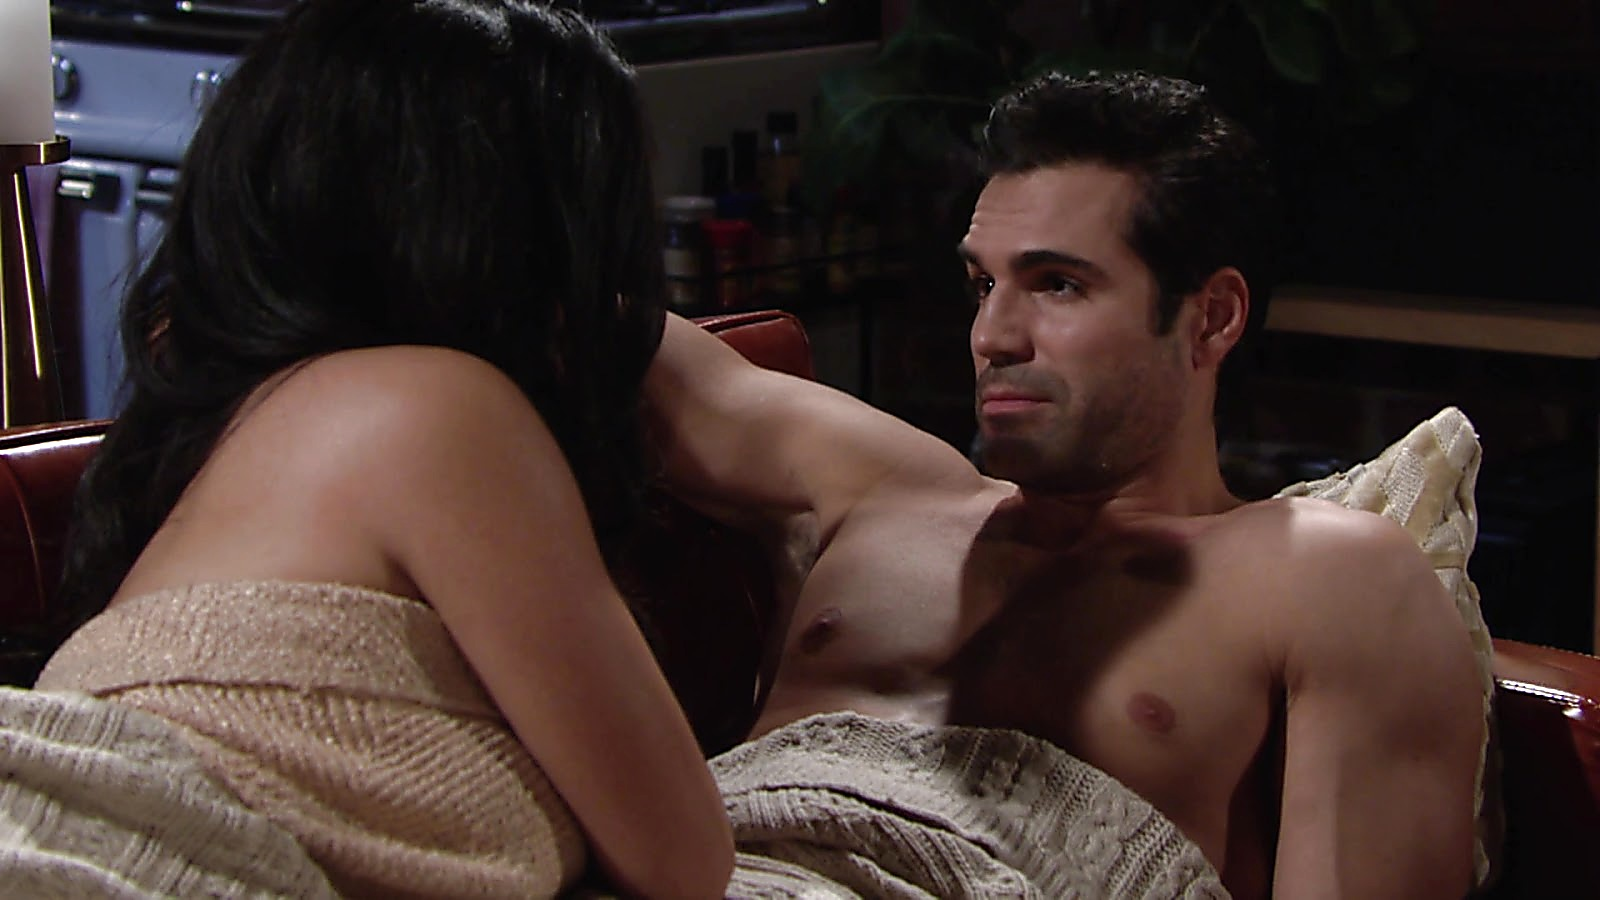 Jordi Vilasuso sexy shirtless scene February 8, 2019, 5am